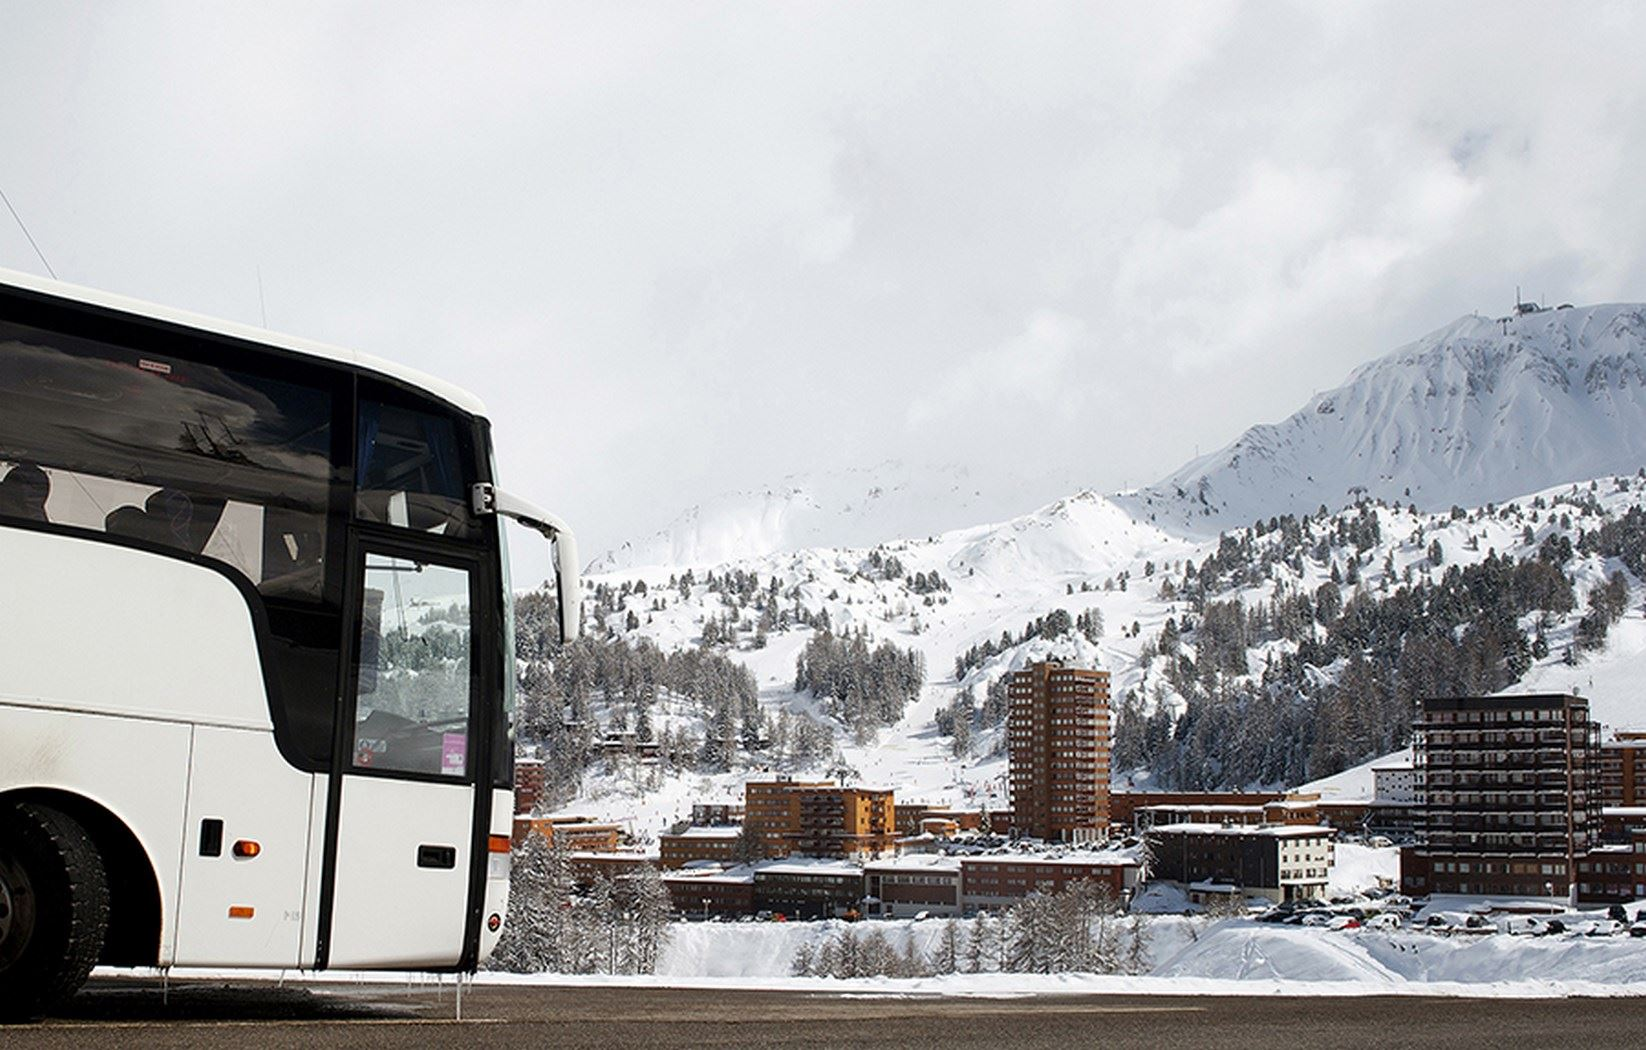 ALTIBUS Chambery airport --> Val Thorens Place des Arolles